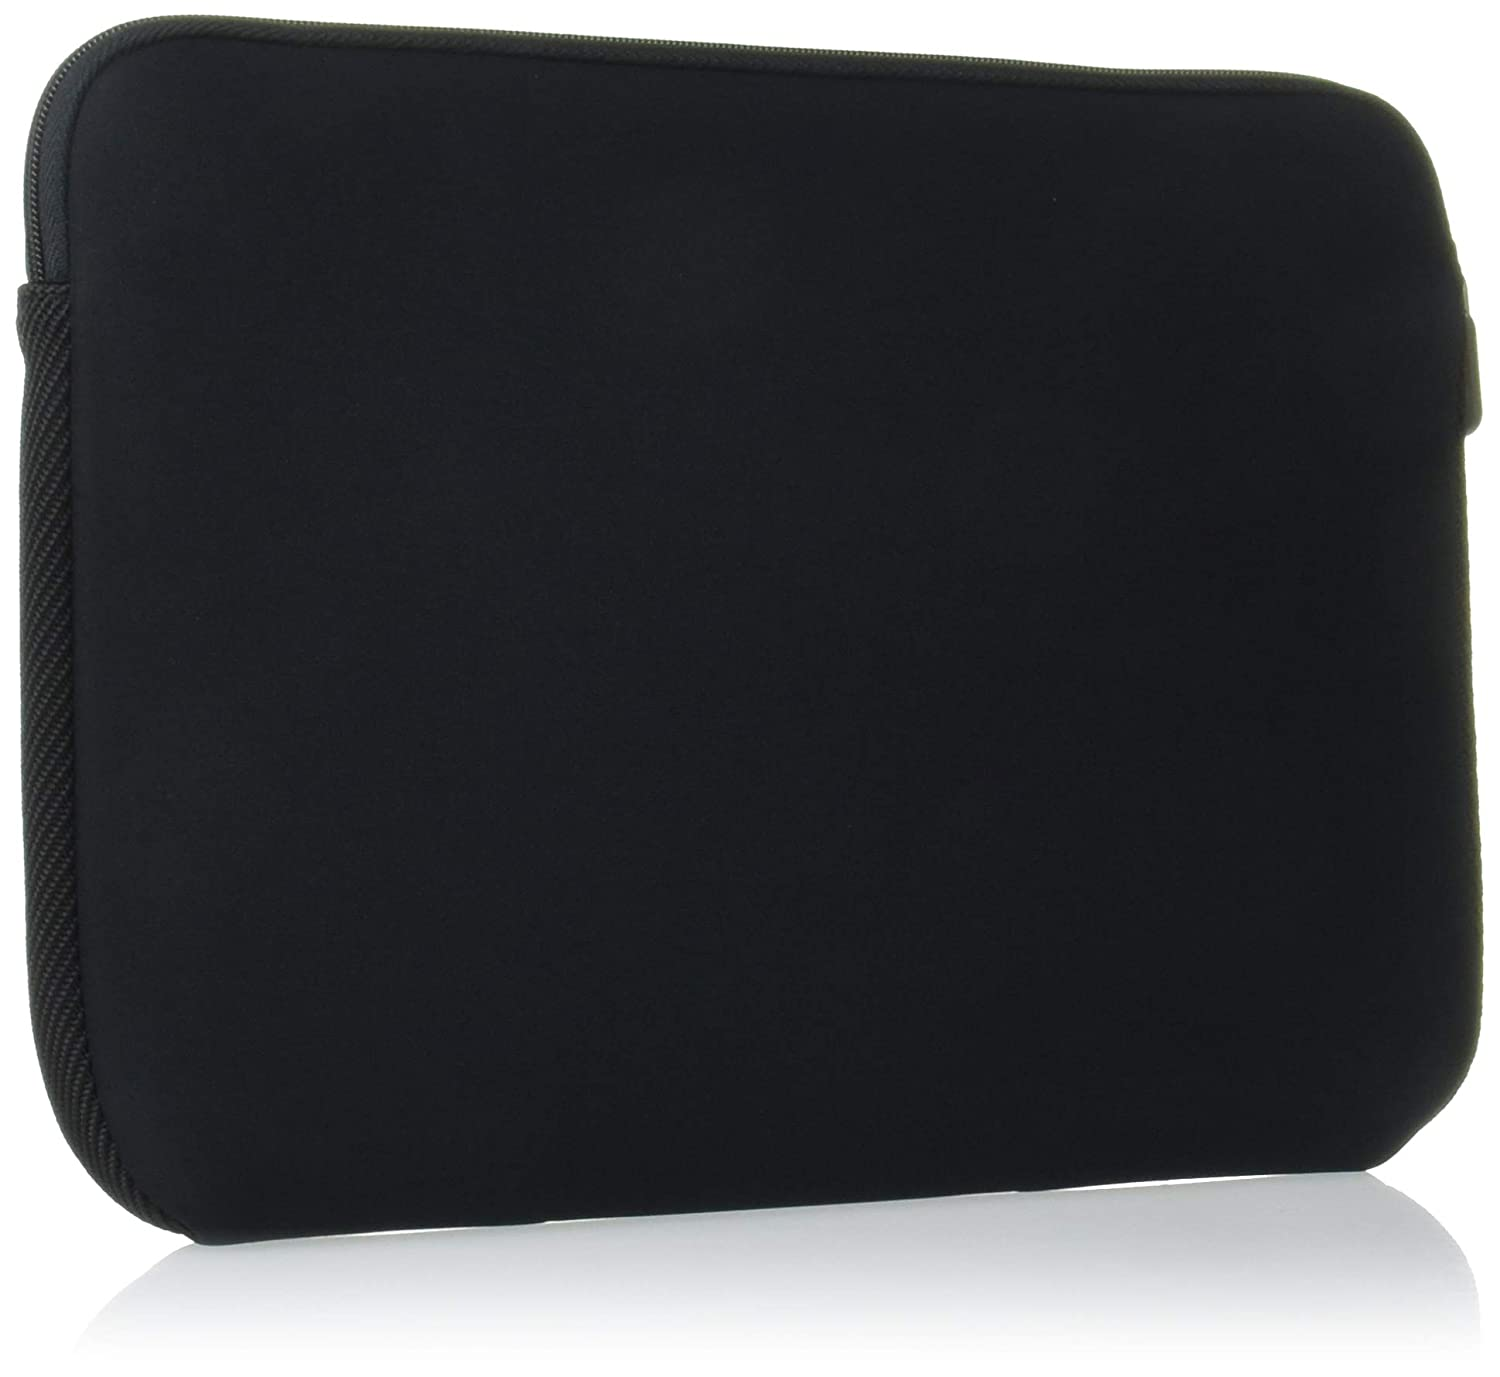 09538adf260b Case Logic LAPS113K Sleeve for 13.3-Inch Apple MacBook - Black